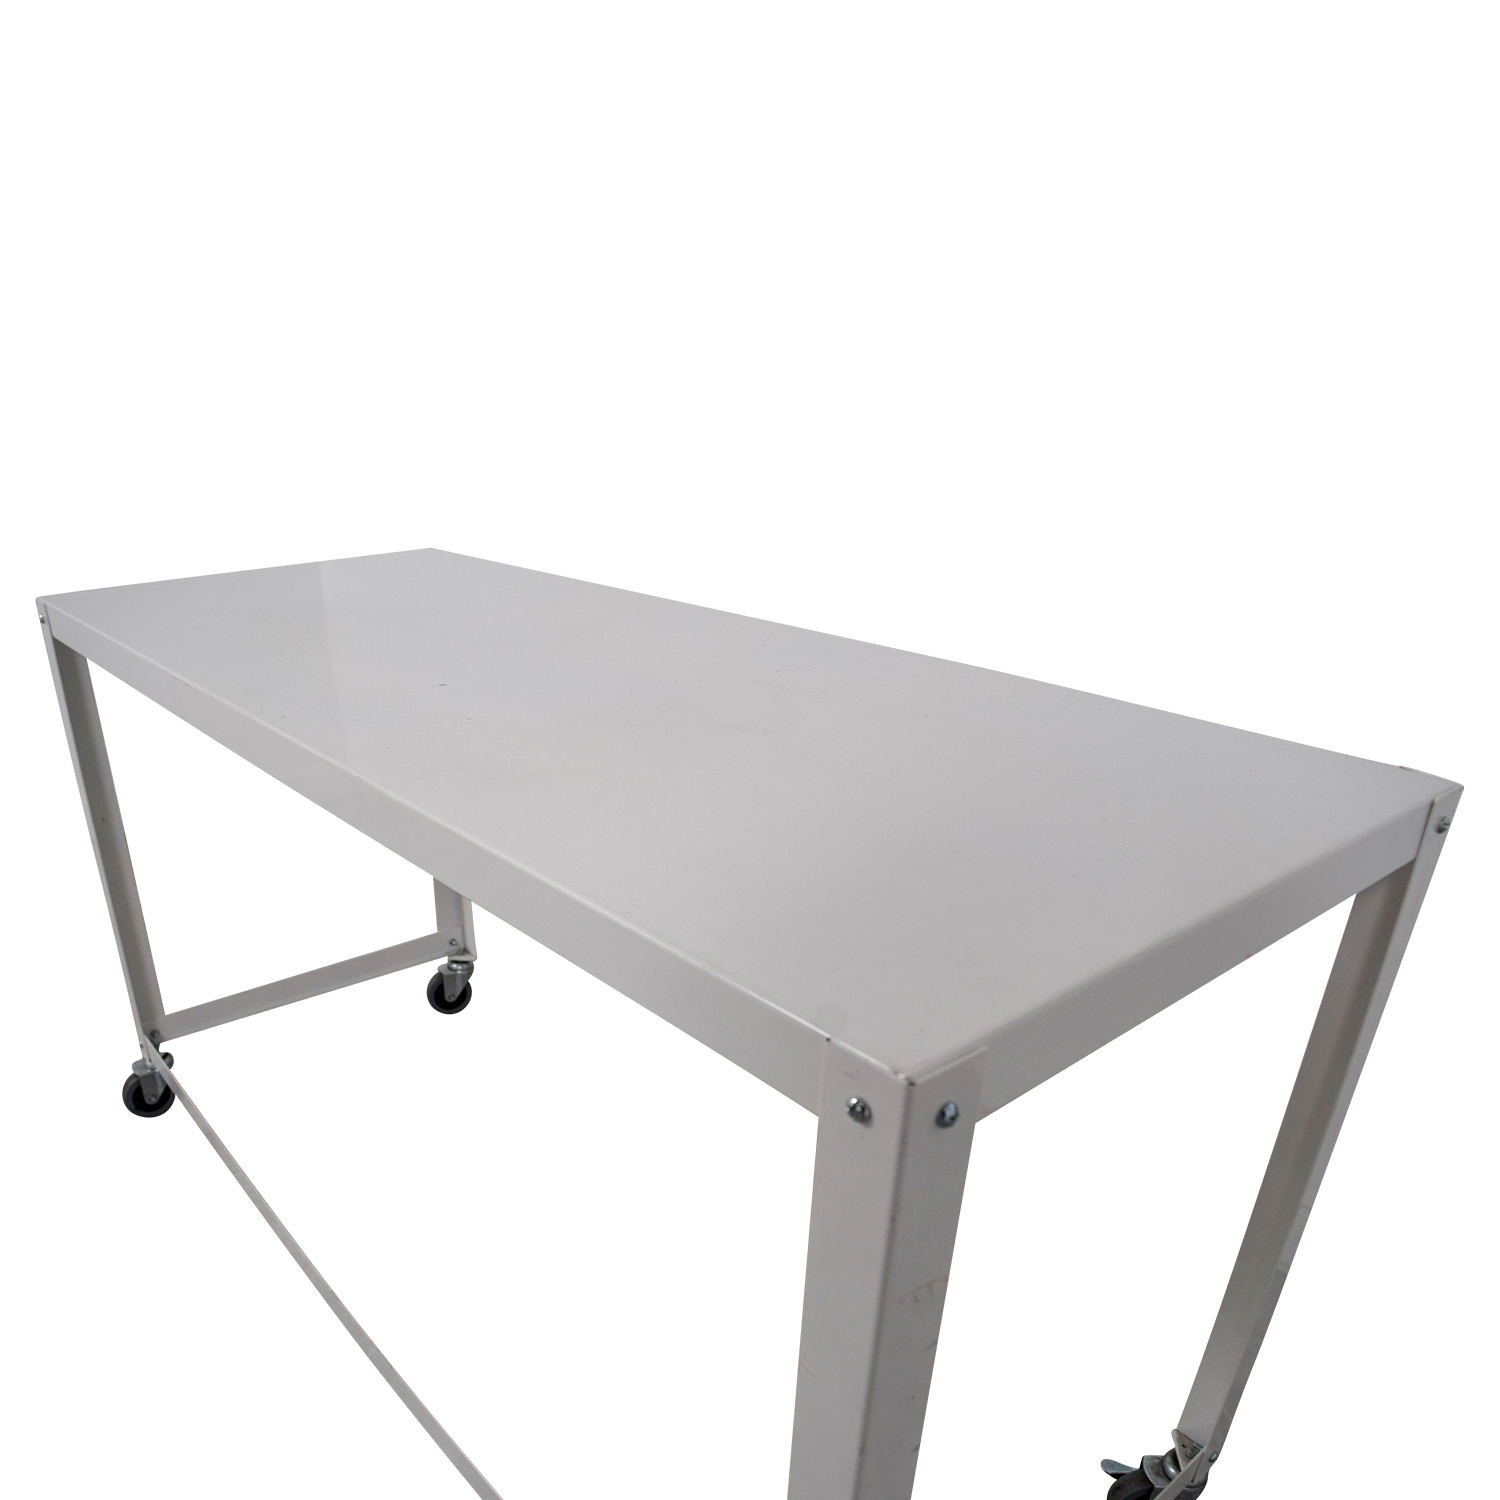 [%81% Off – Cb2 Cb2 Go Cart White Rolling Desk / Tables For Favorite Go Cart White Rolling Coffee Tables|Go Cart White Rolling Coffee Tables Regarding Famous 81% Off – Cb2 Cb2 Go Cart White Rolling Desk / Tables|Fashionable Go Cart White Rolling Coffee Tables Within 81% Off – Cb2 Cb2 Go Cart White Rolling Desk / Tables|Well Liked 81% Off – Cb2 Cb2 Go Cart White Rolling Desk / Tables For Go Cart White Rolling Coffee Tables%] (View 3 of 20)